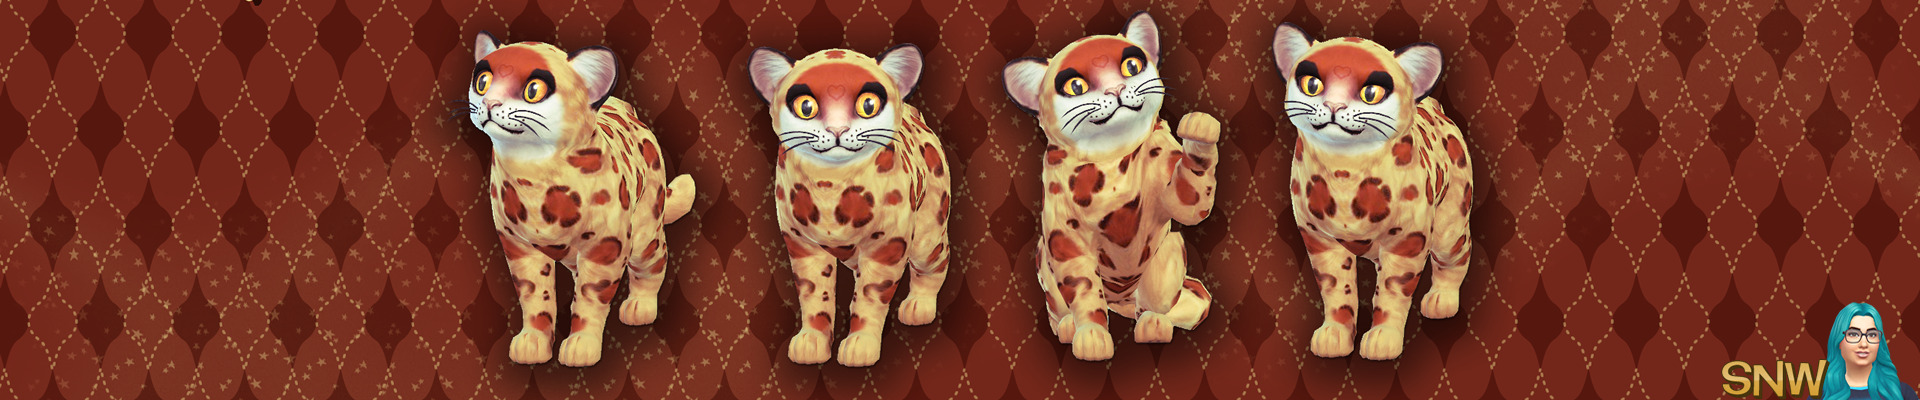 The Sims 4: Cats & Dogs - Happy Simming! Junior the Cute Leopard Cub (Kitten) wallpaper